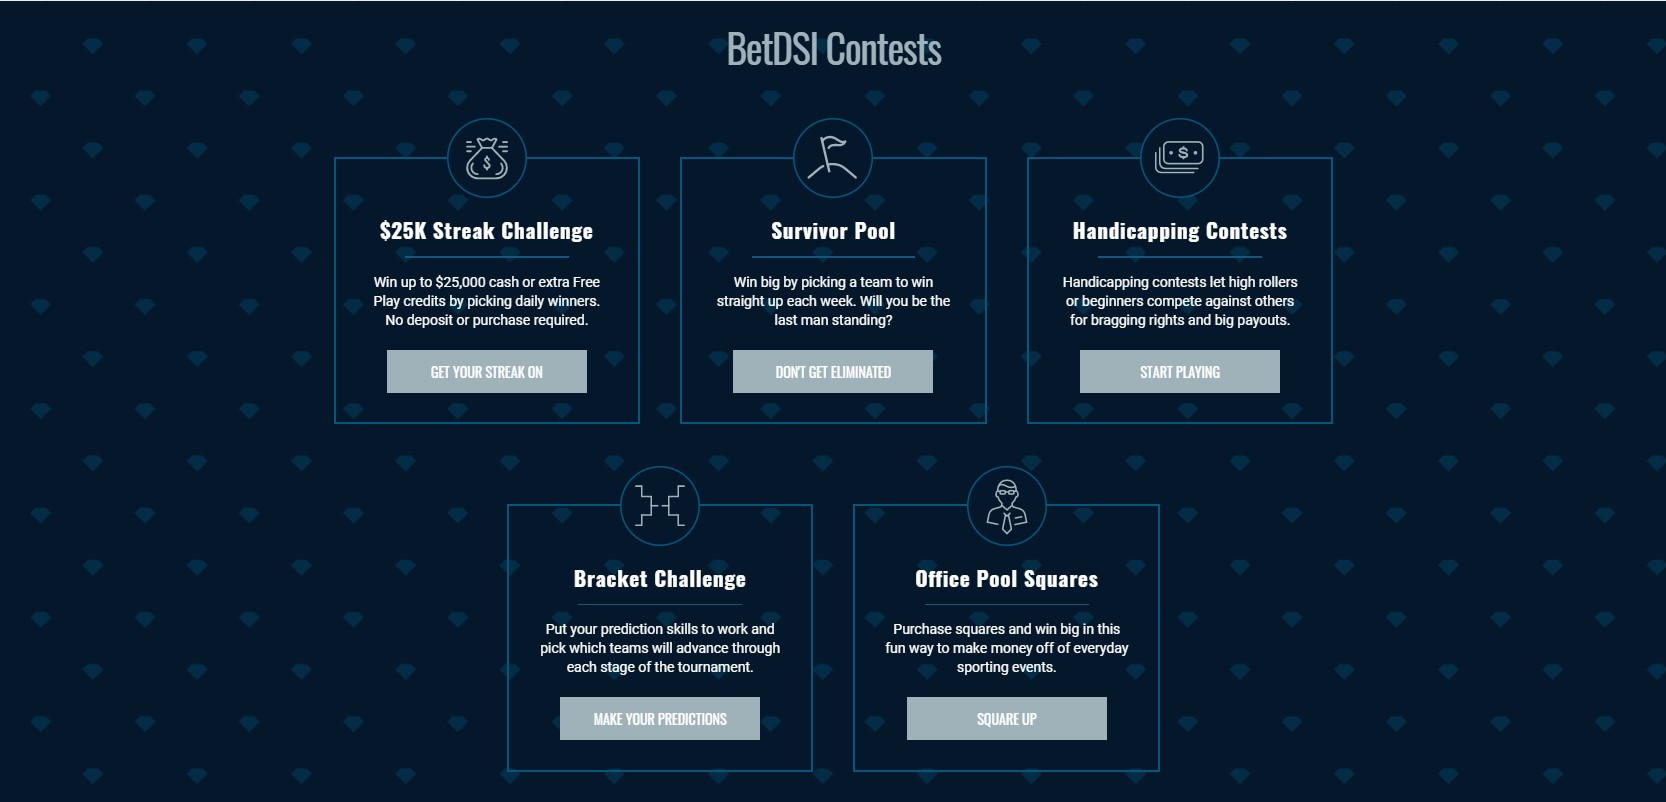 BetDSI contests